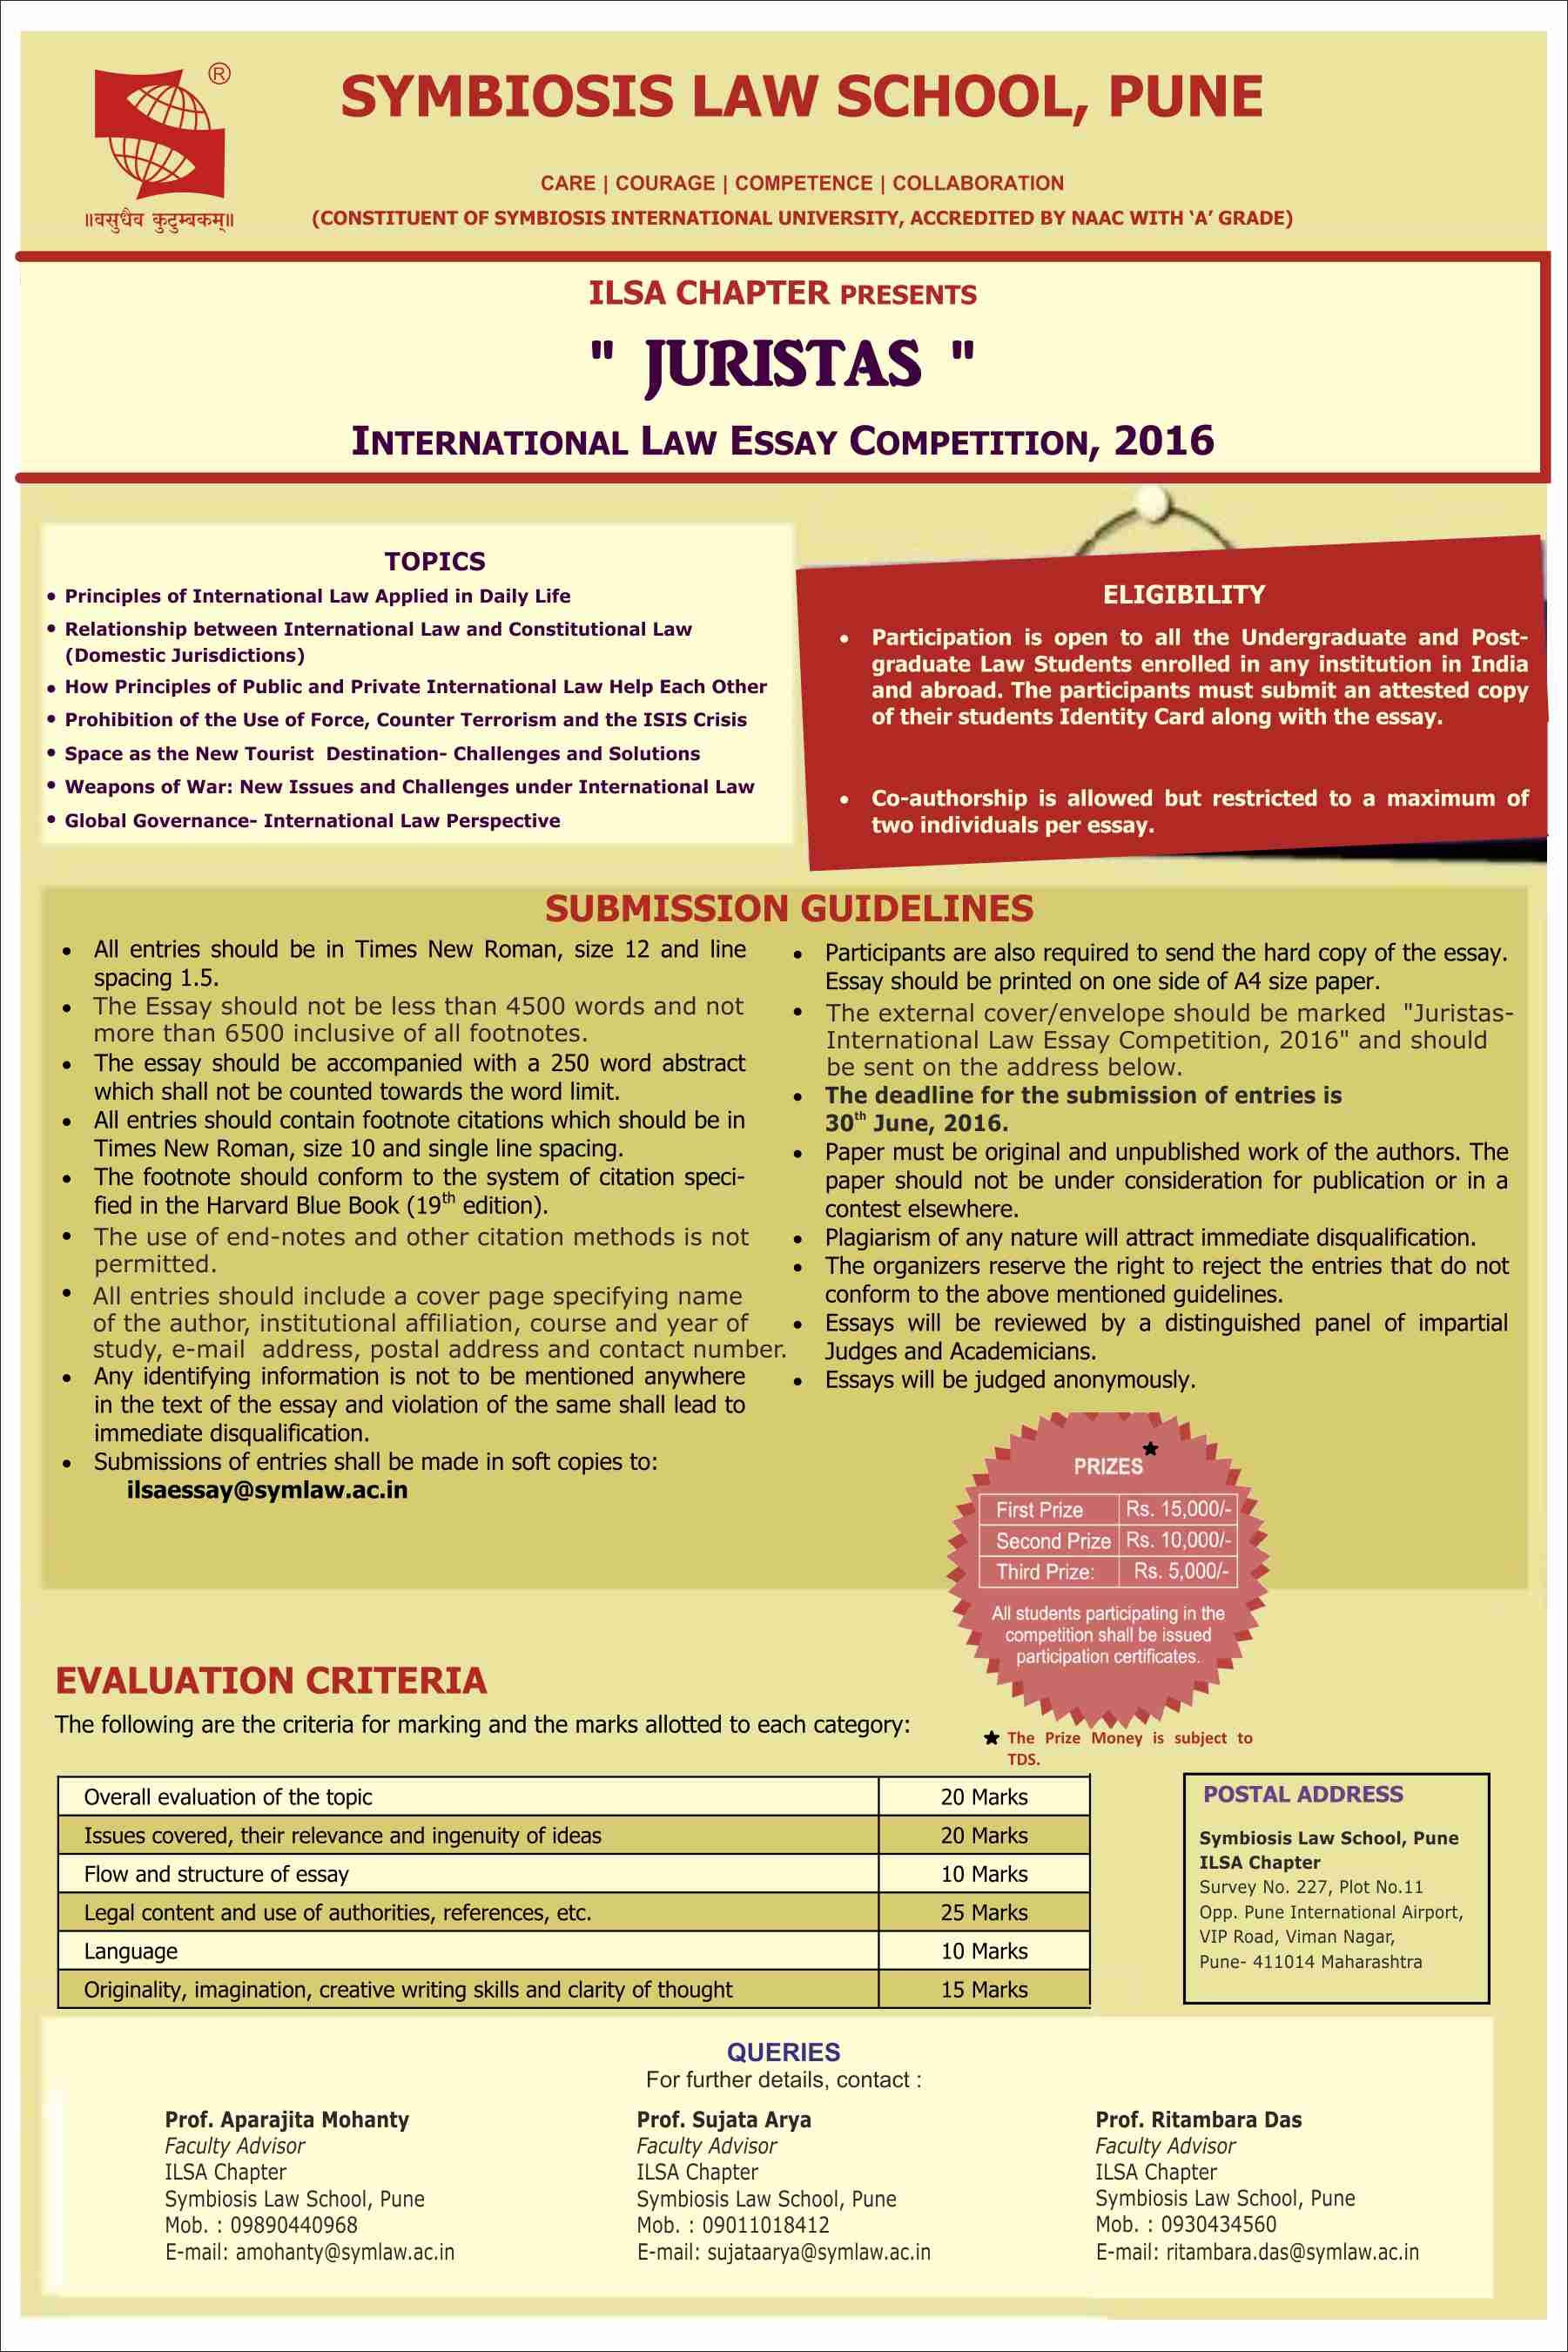 essay on competition essay competition against violence speech  essay competition archives lawctopus sls pune s juristas international law essay competition 2016 submit by 30